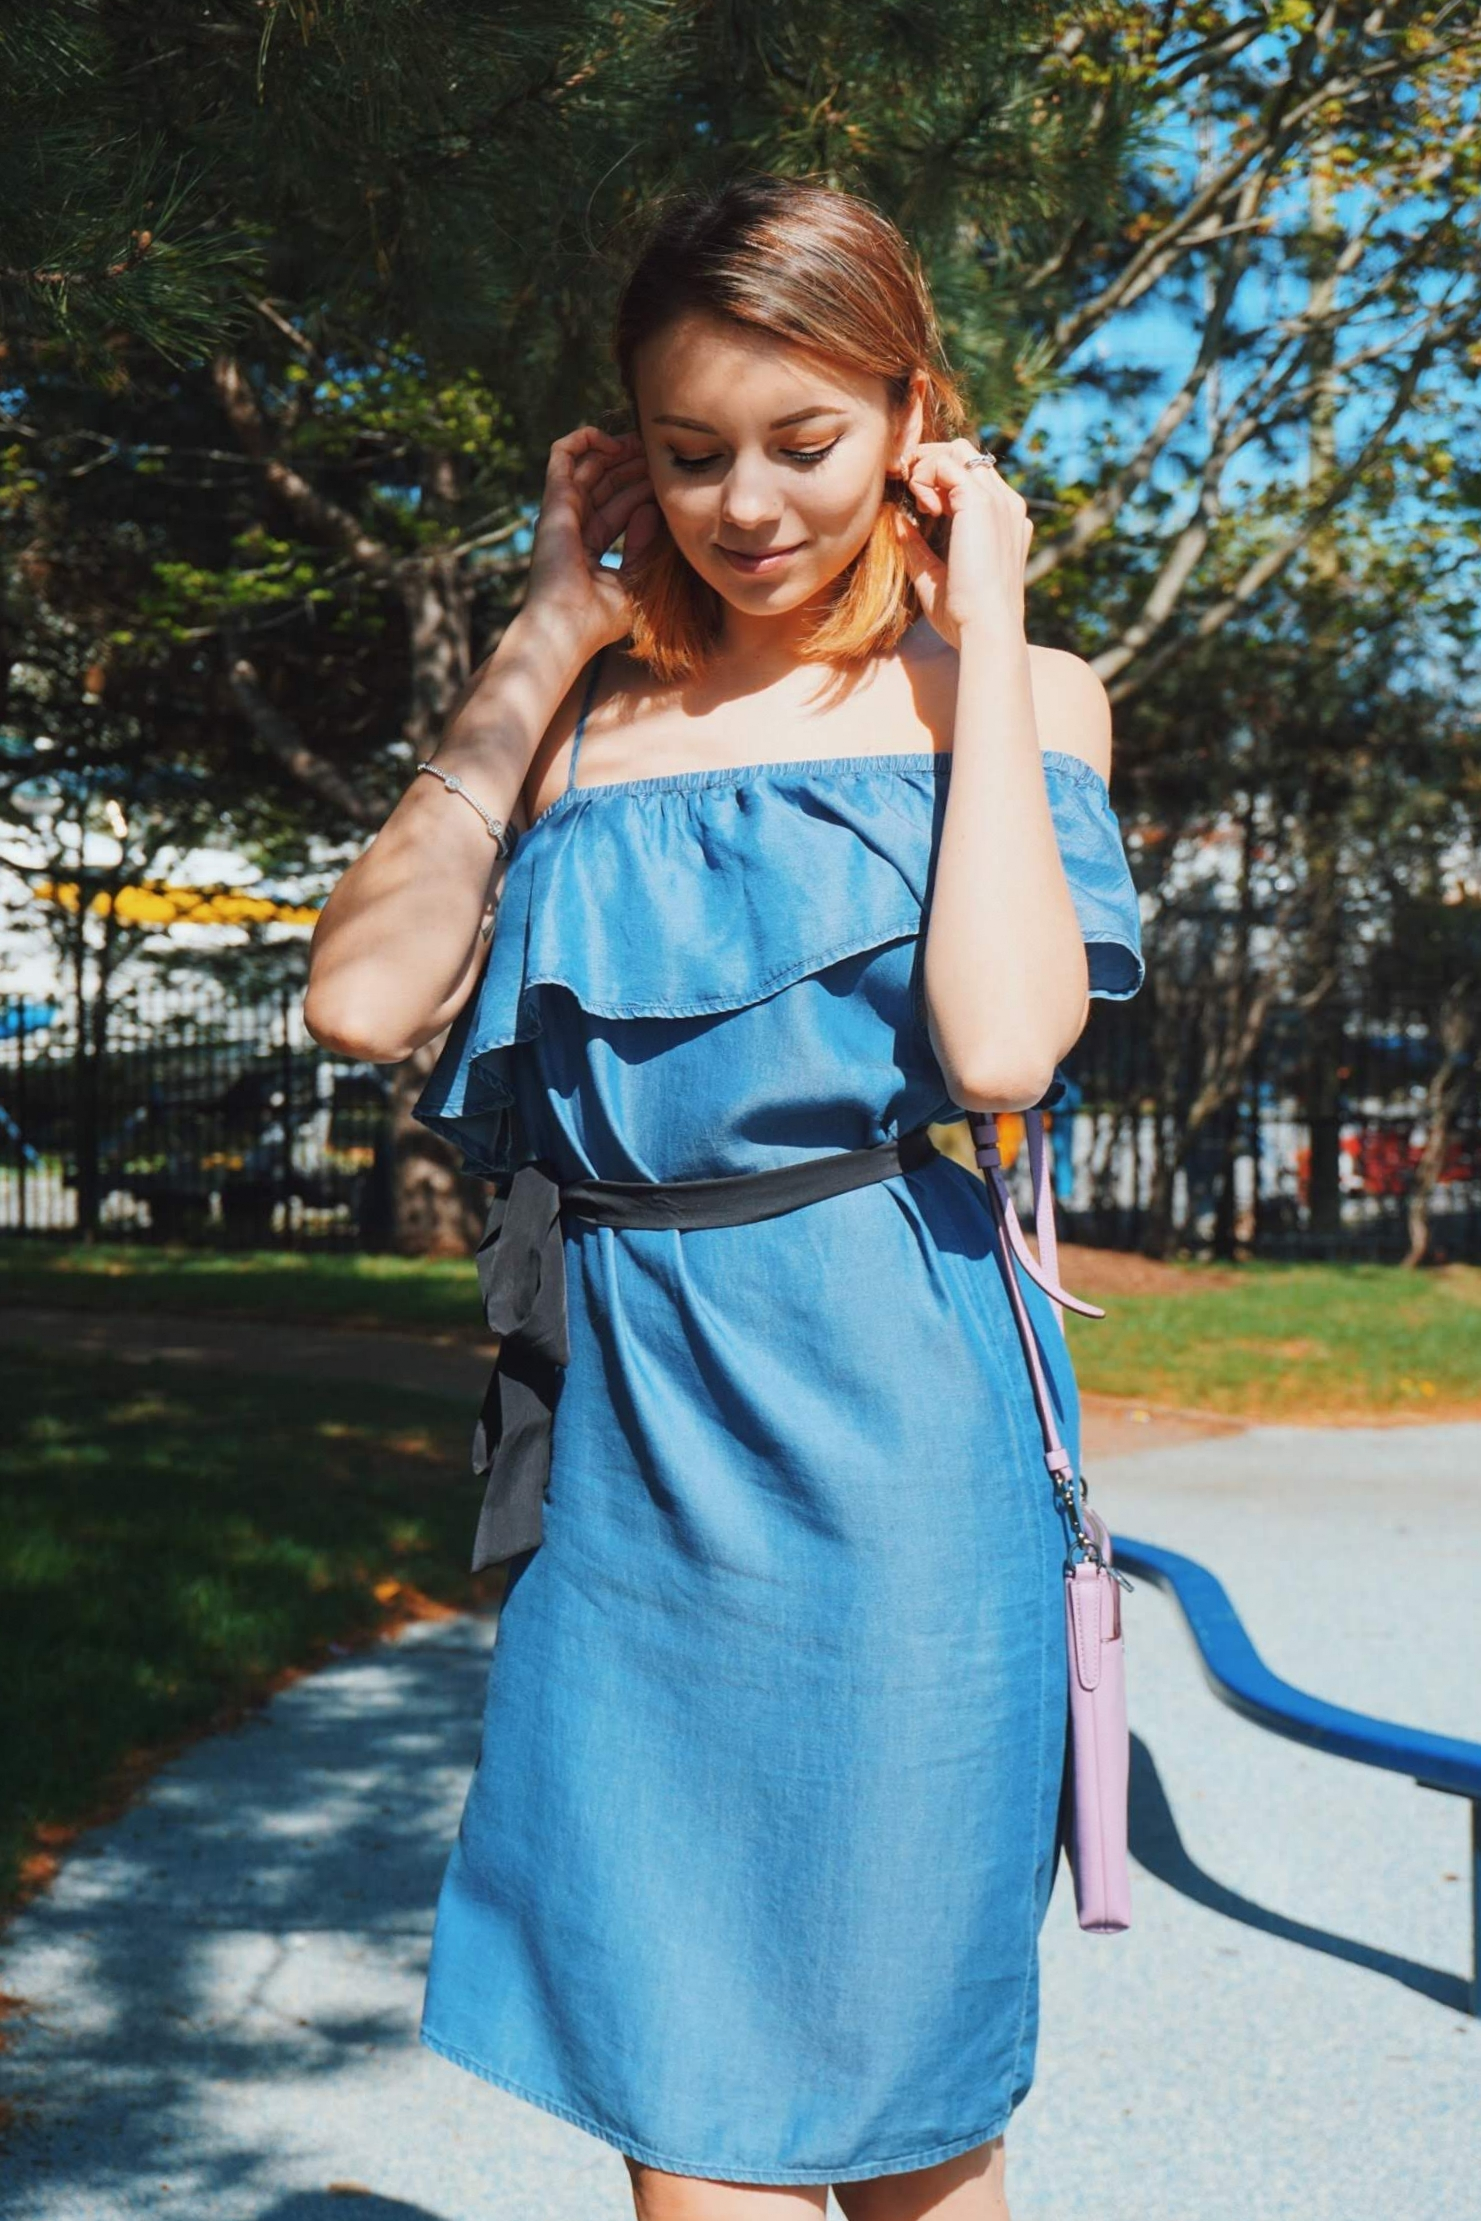 A girl wearing an adorable denim dress with ruffles on its top, one shoulder is open, black tie on the waist.